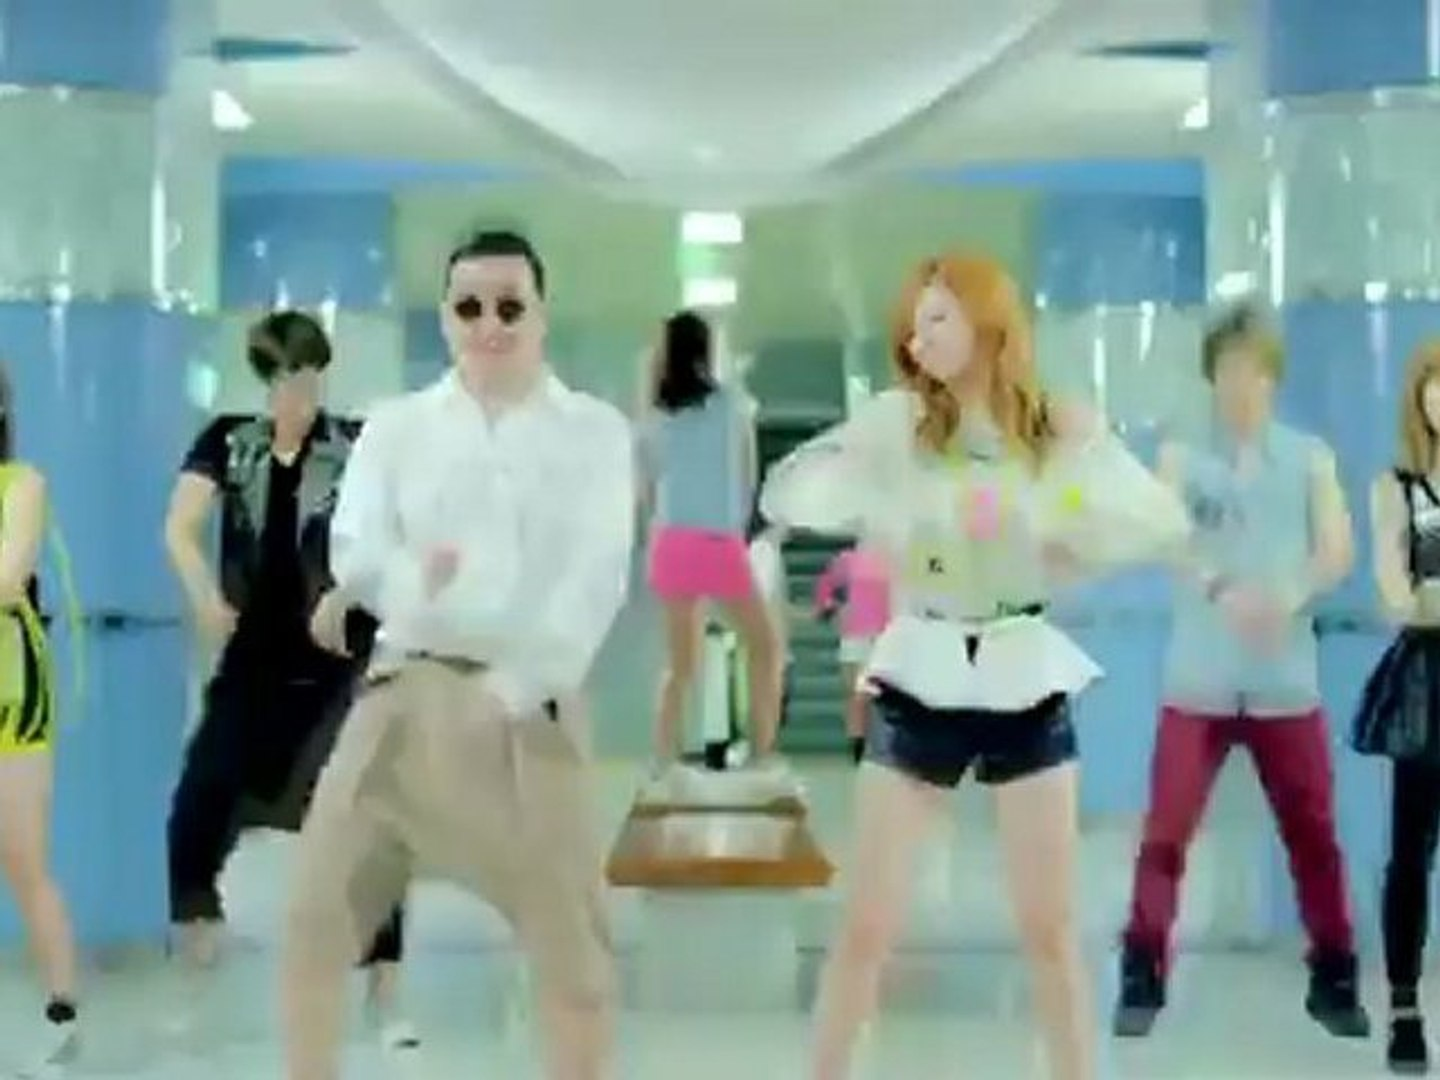 Music videos without music GANGNAM STYLE 강남스타일 by PSY